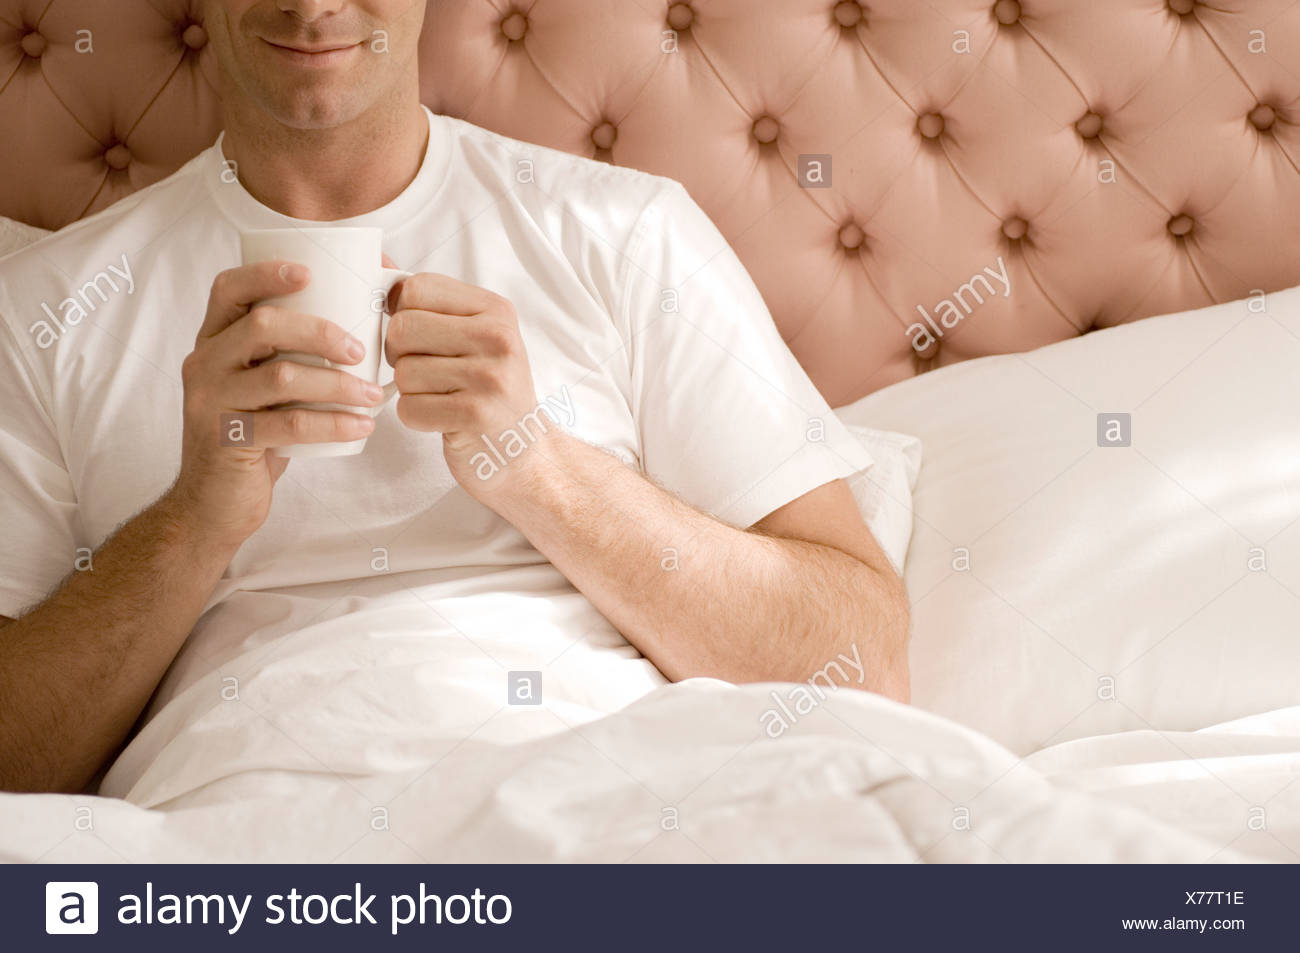 Young man holding a cup while relaxing in bed - Stock Image